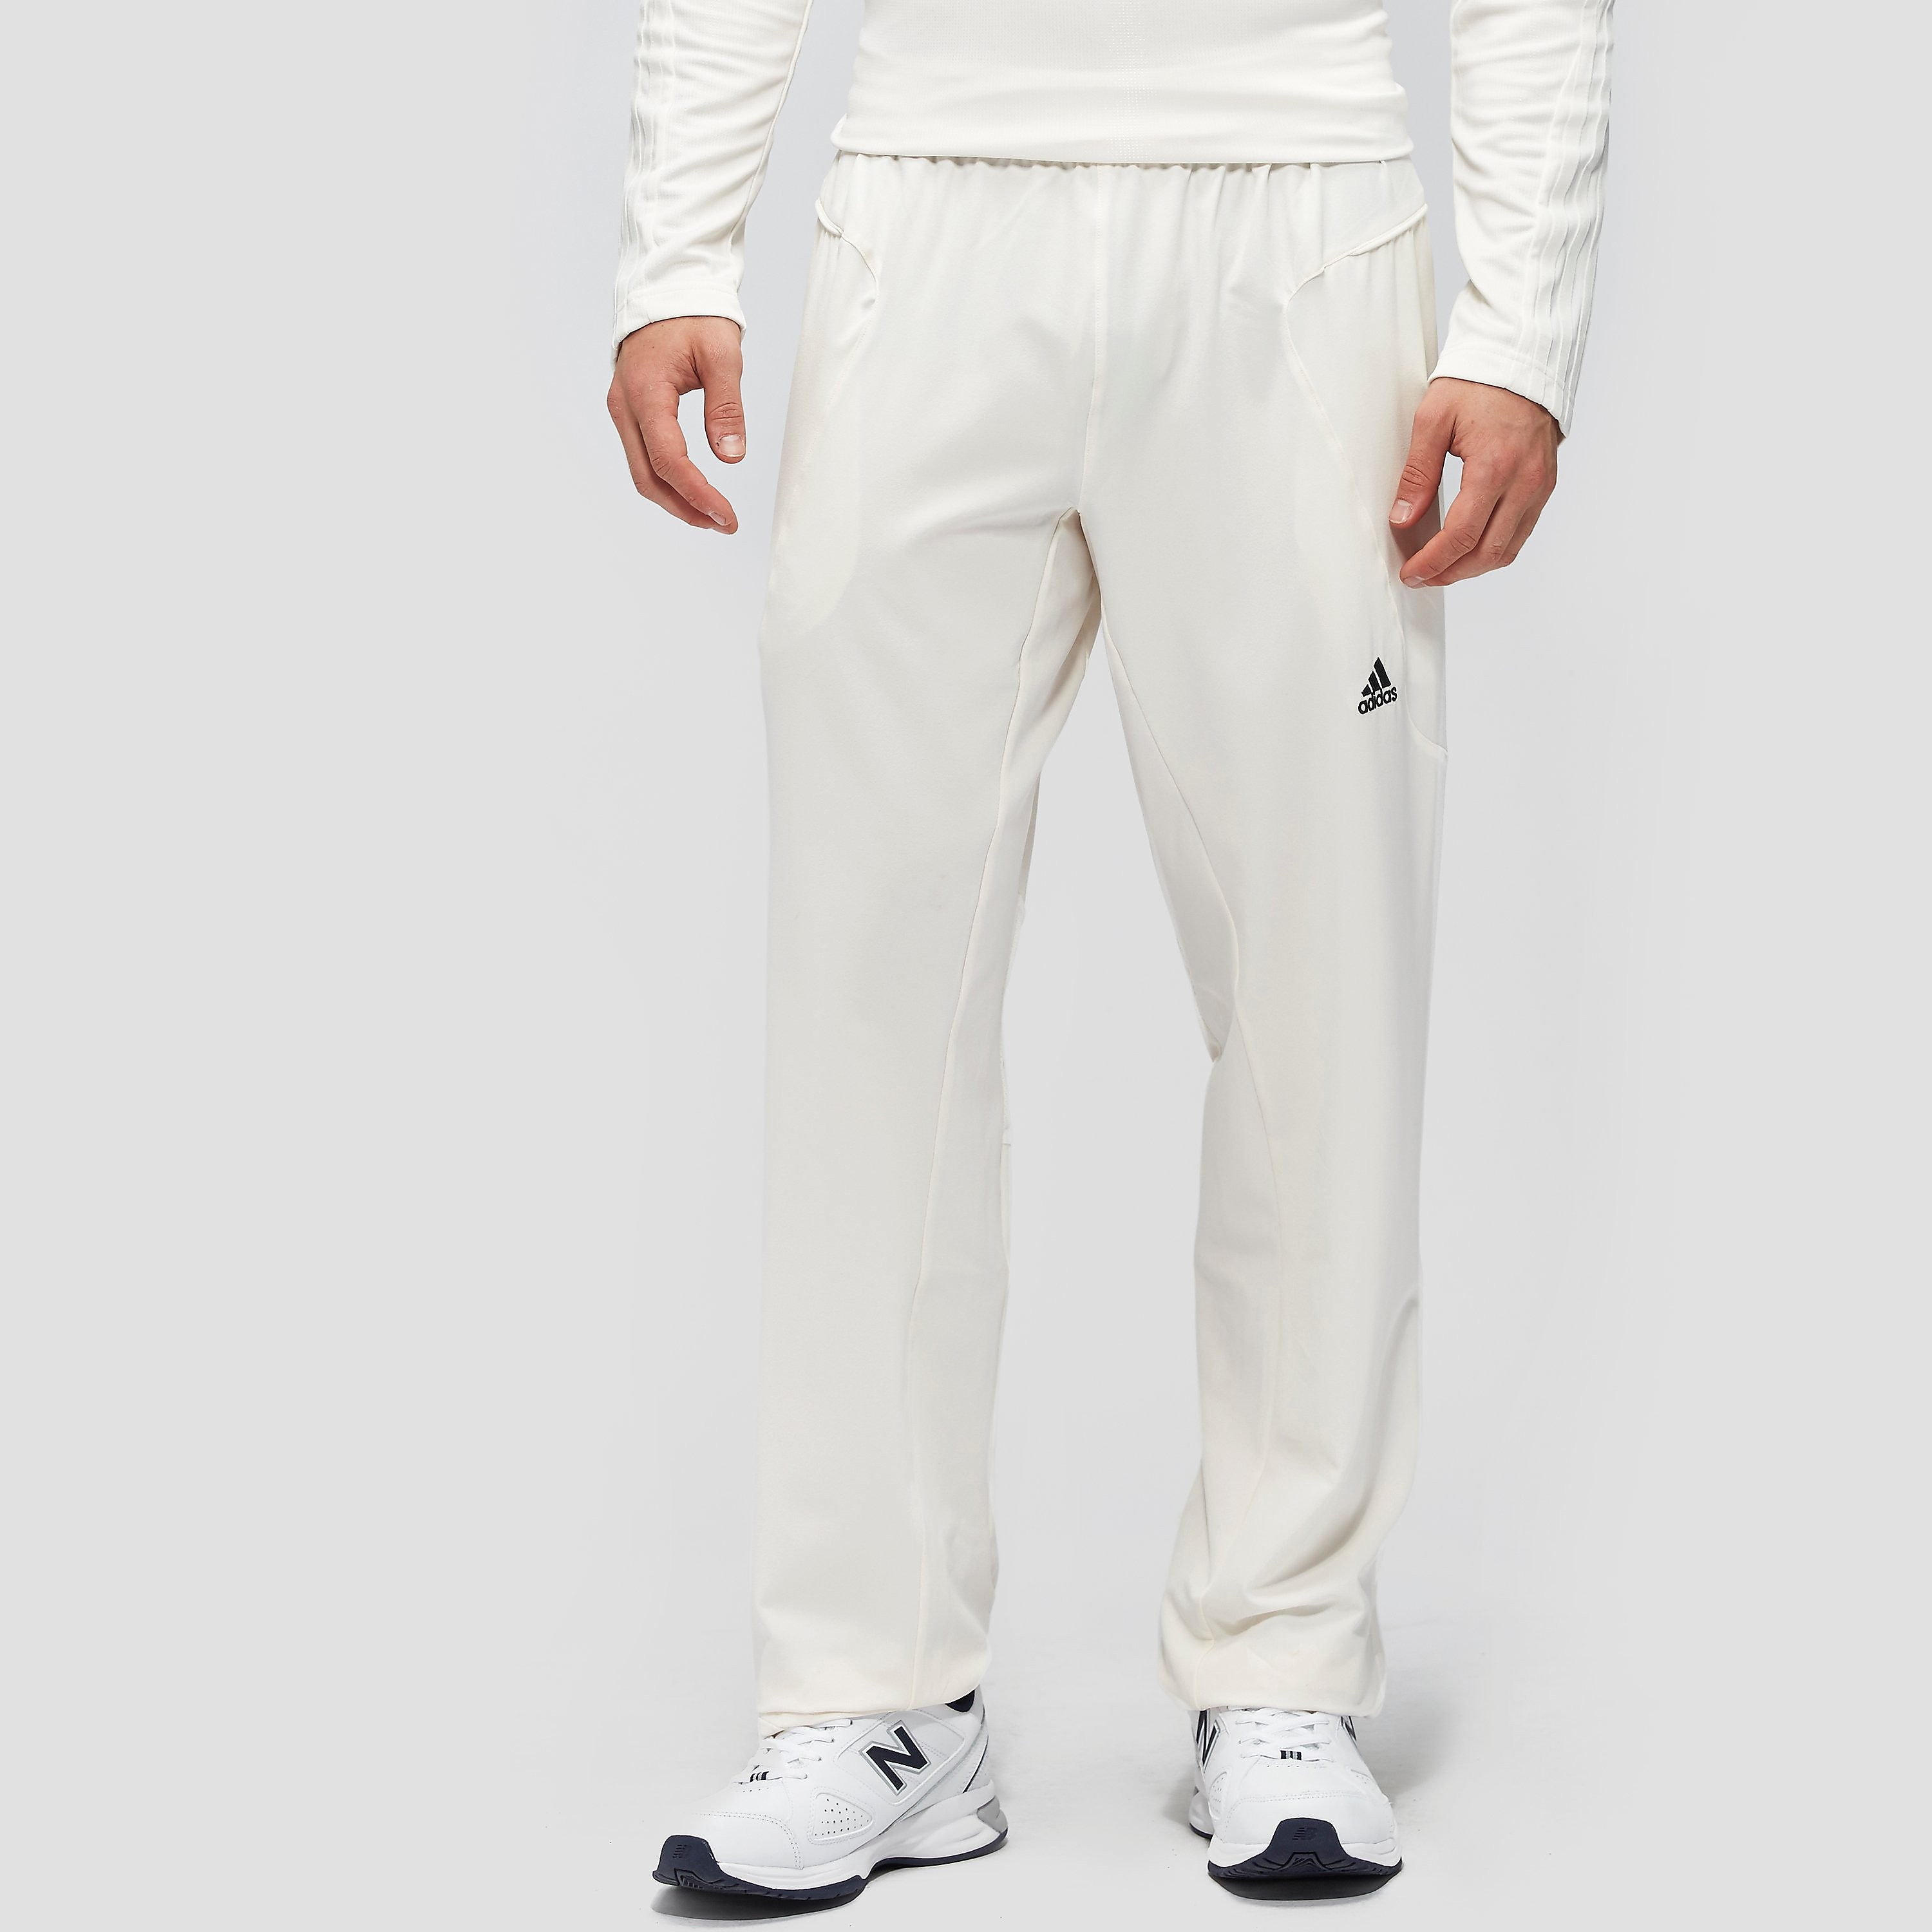 adidas Men's Cricket Trousers